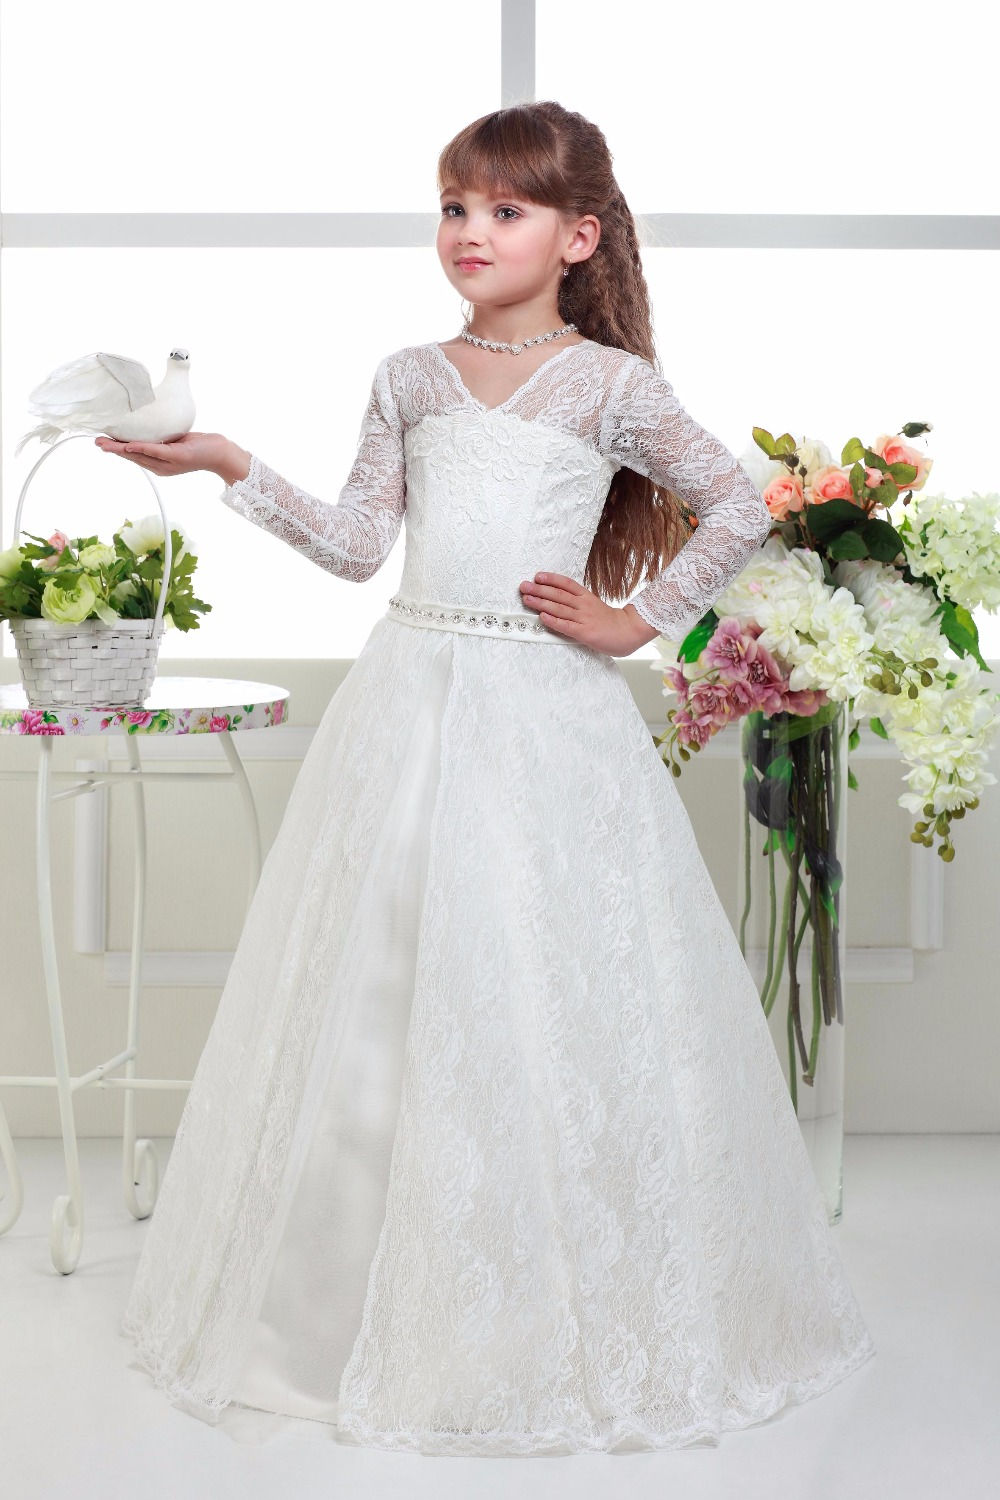 First Communion Dresses Infant Appliques Long Sleeves Crystal Lace Up Tiered Pageant Little PrincessTulle Ball Gowns 0-12 Year blue pageant dresses for little girls a line spaghetti straps solid appliques crystal lace up flower girl first communion gowns